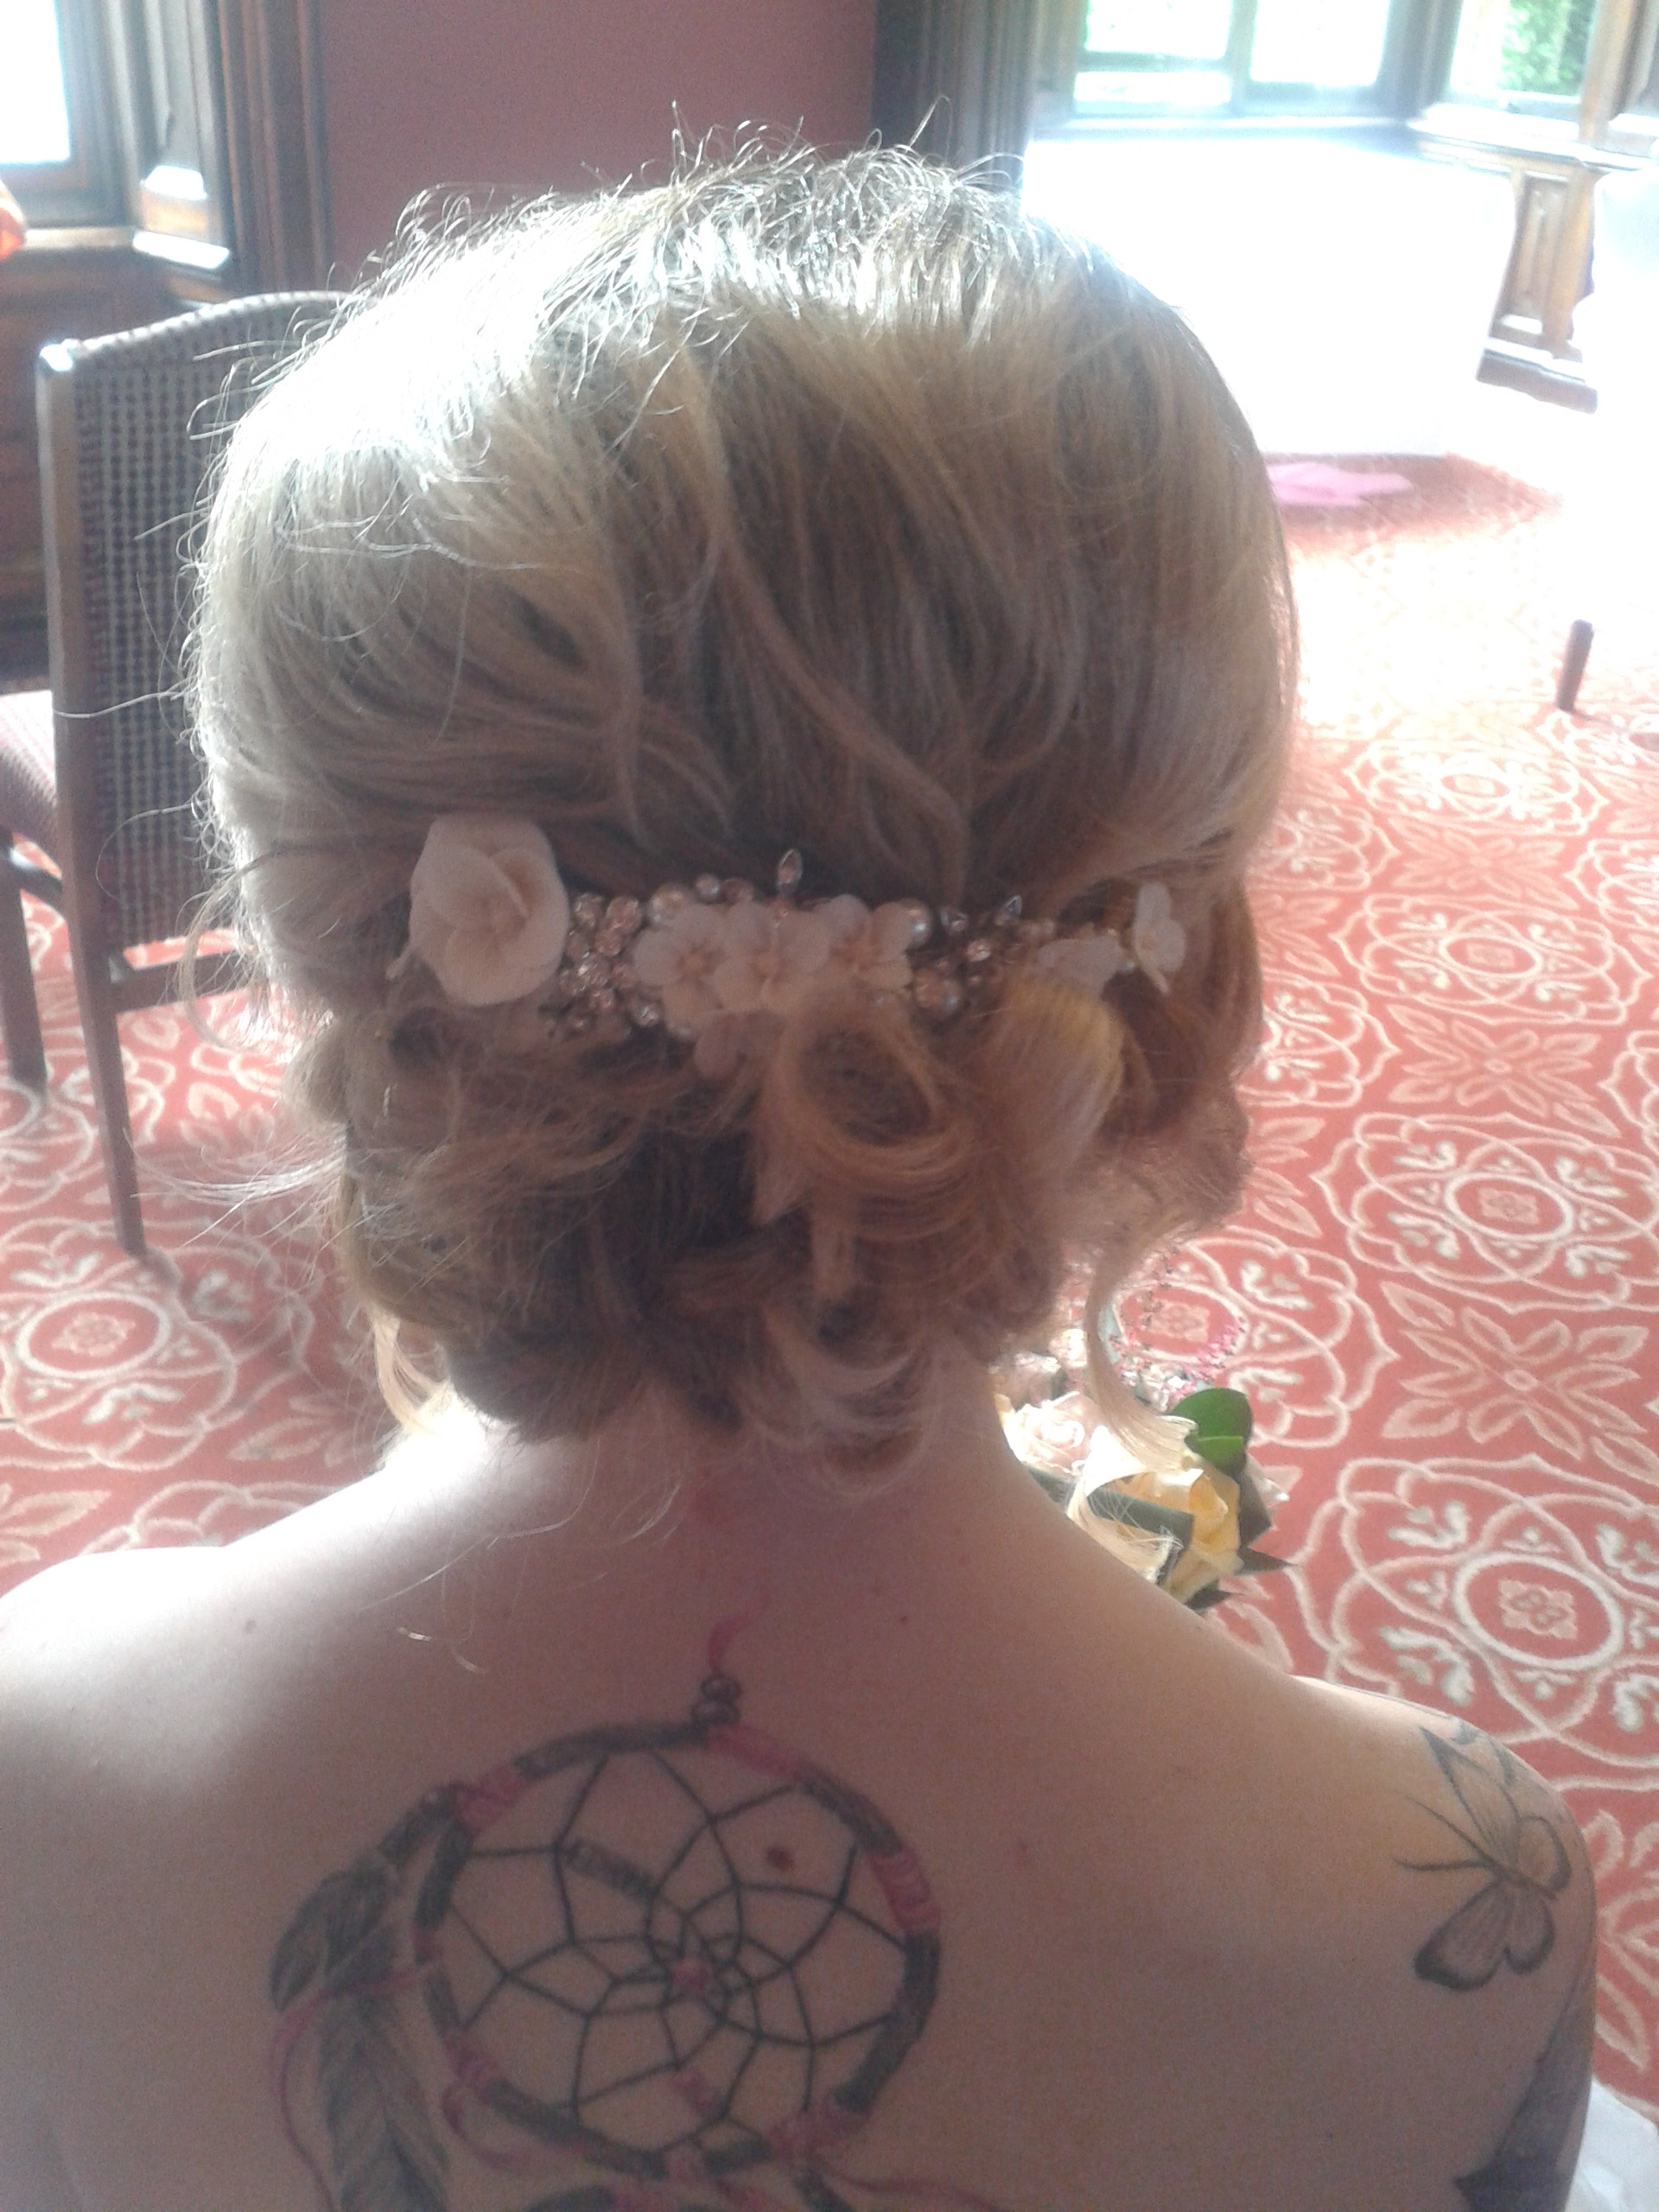 Hair styling and Hair-up